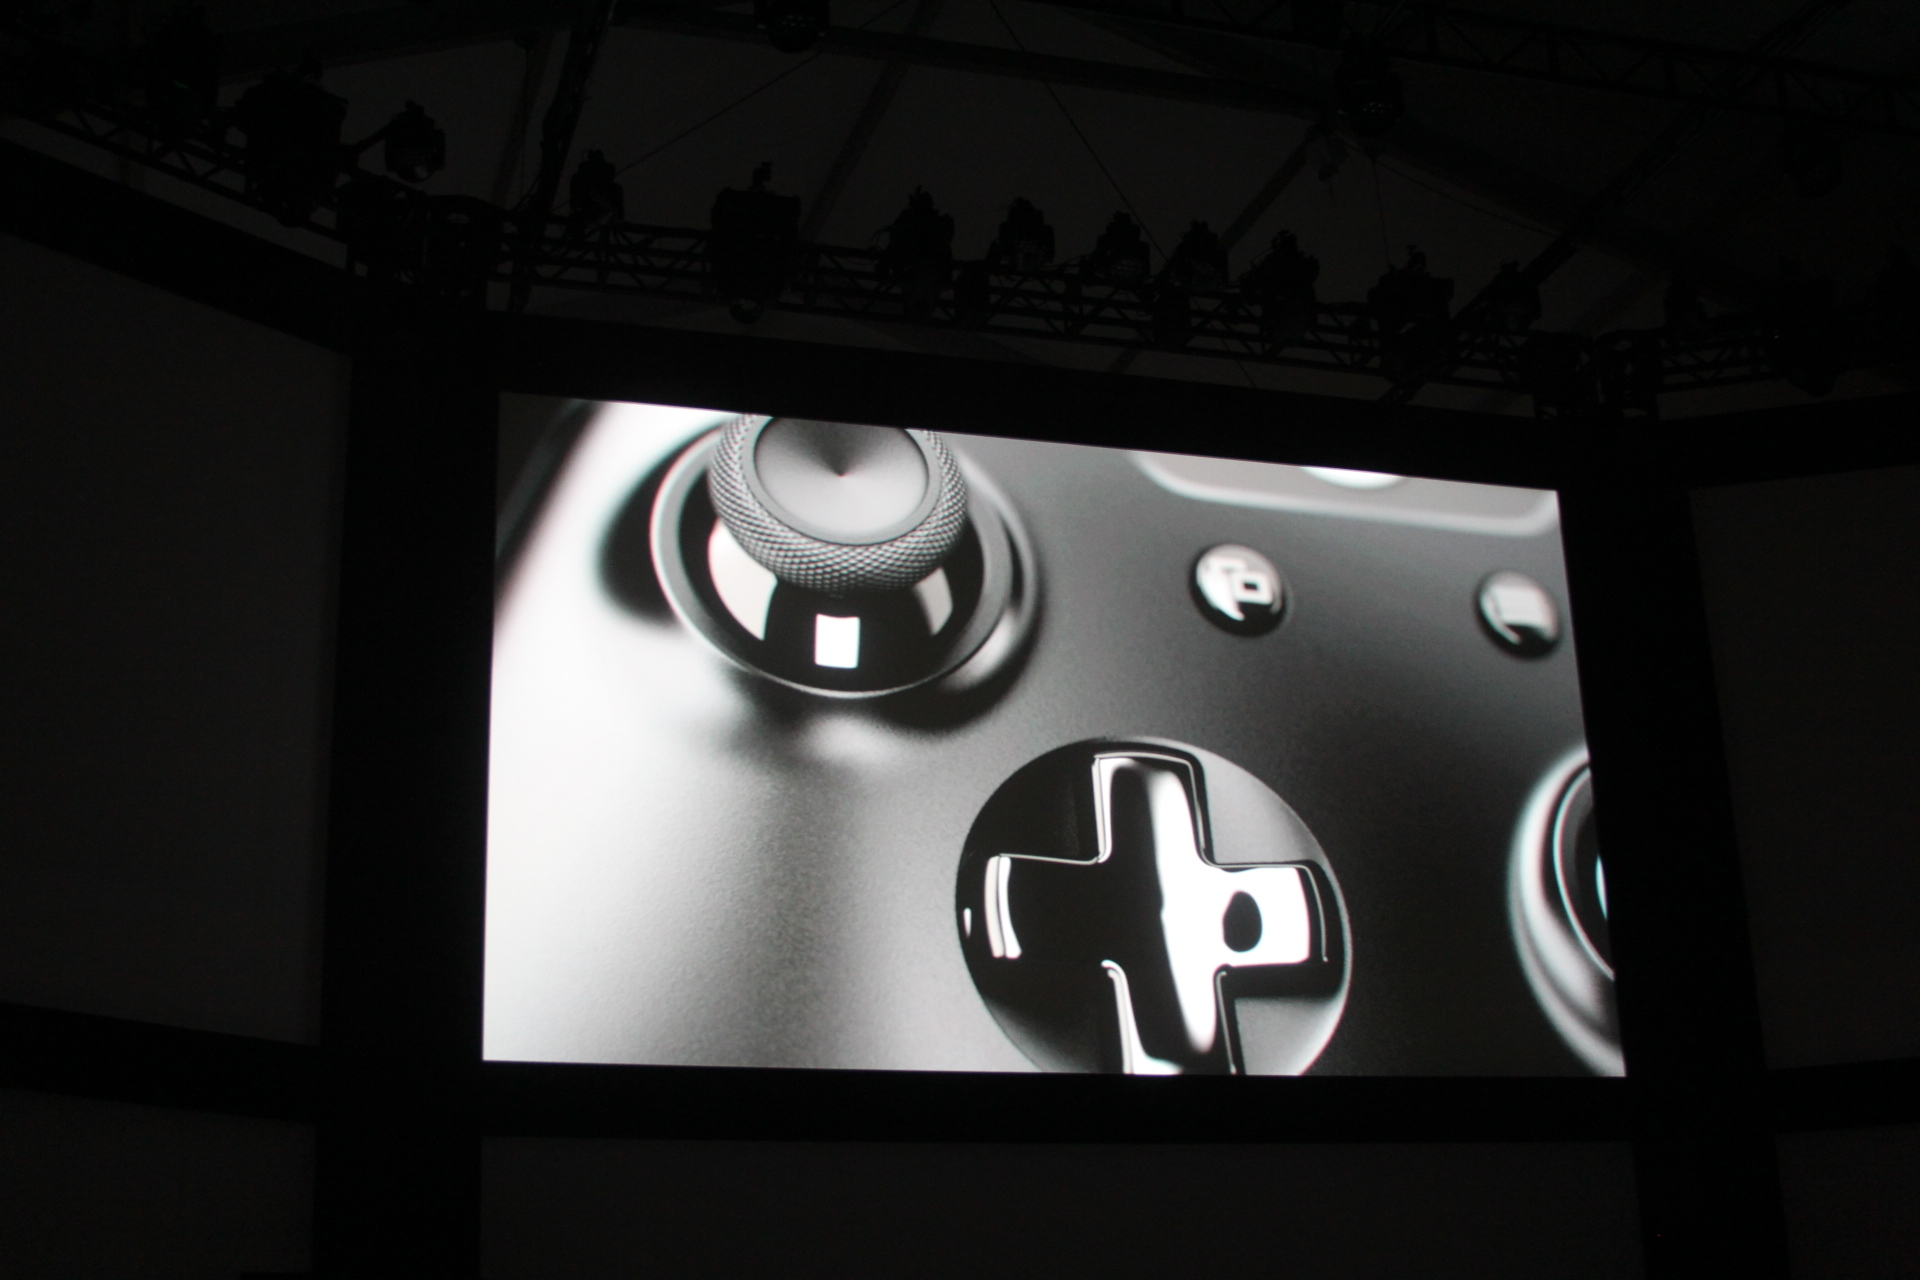 0013 Microsoft introduces new controller for Xbox One console with redesigned d pad